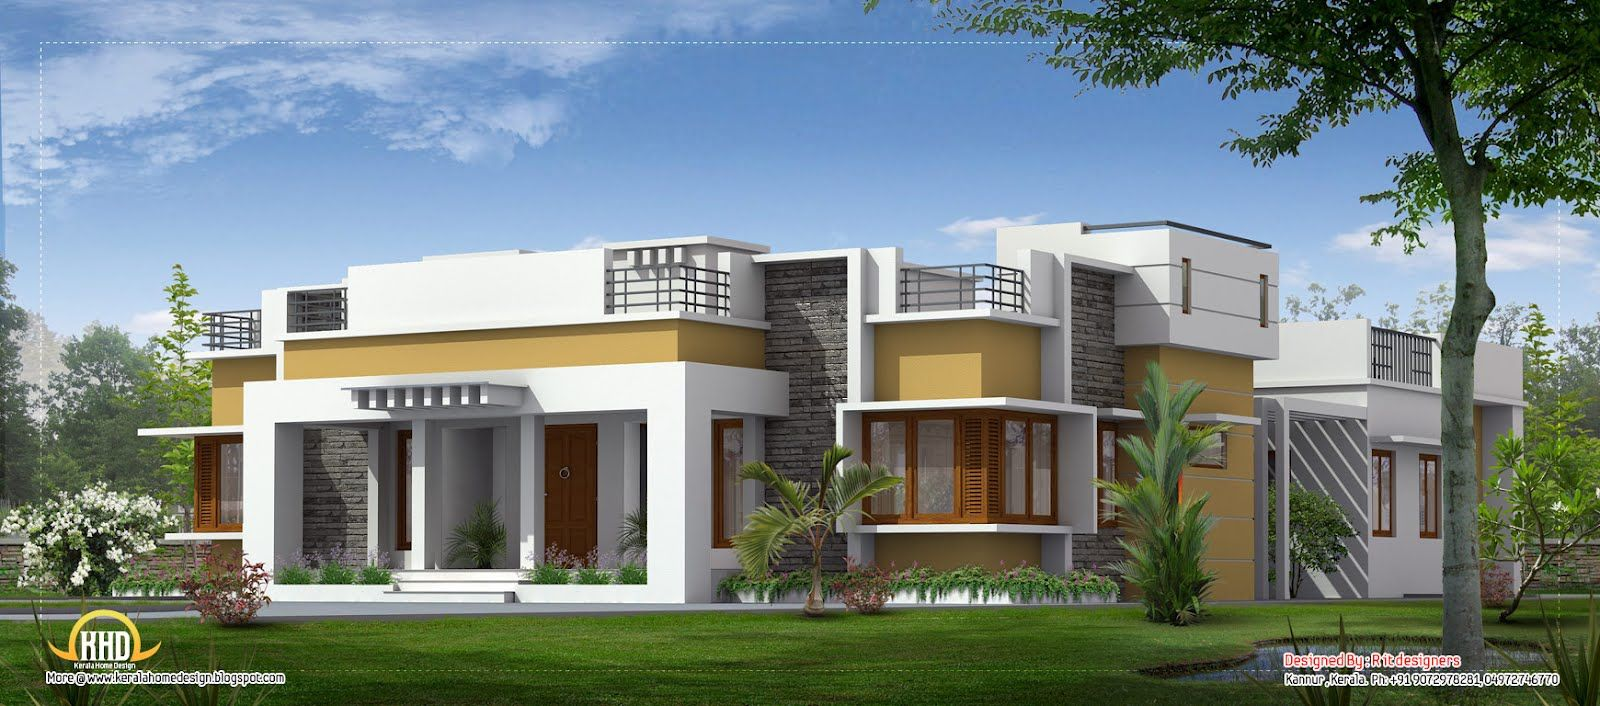 Single level designer home single floor house plans for Single floor house elevations indian style